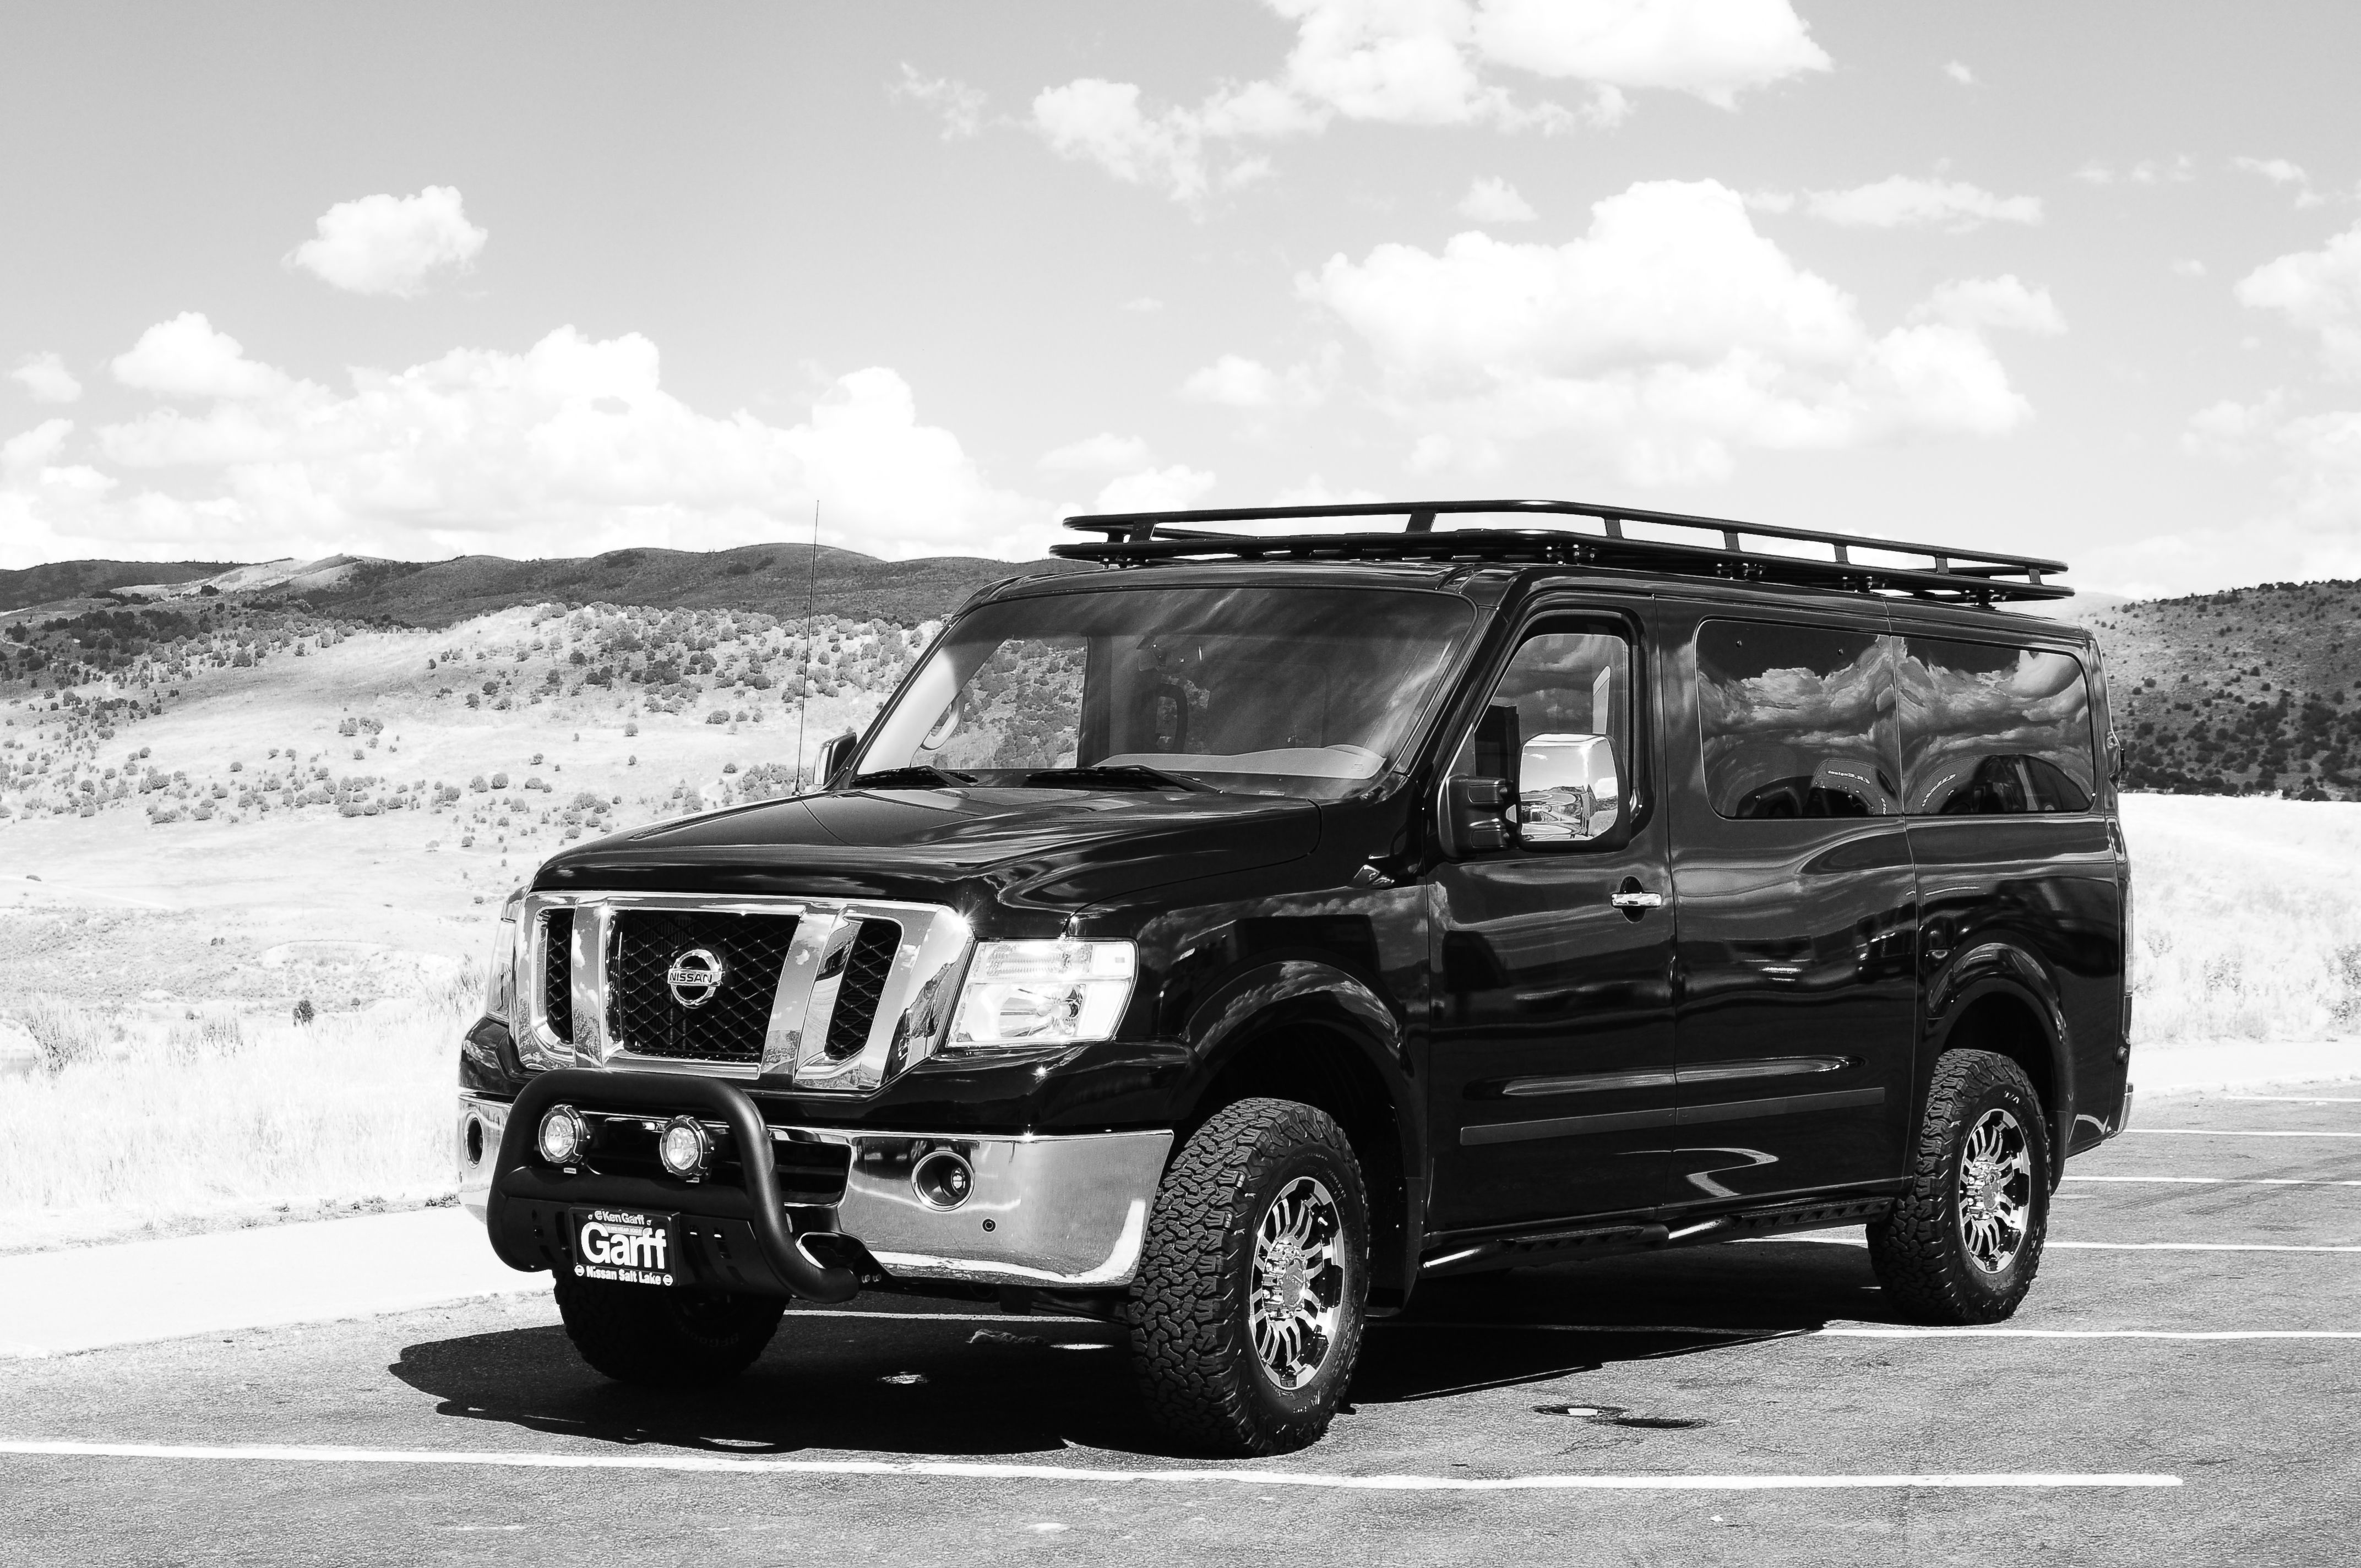 nv3500 4x4 installed by advanced four wheel drive systems in salt rh pinterest com